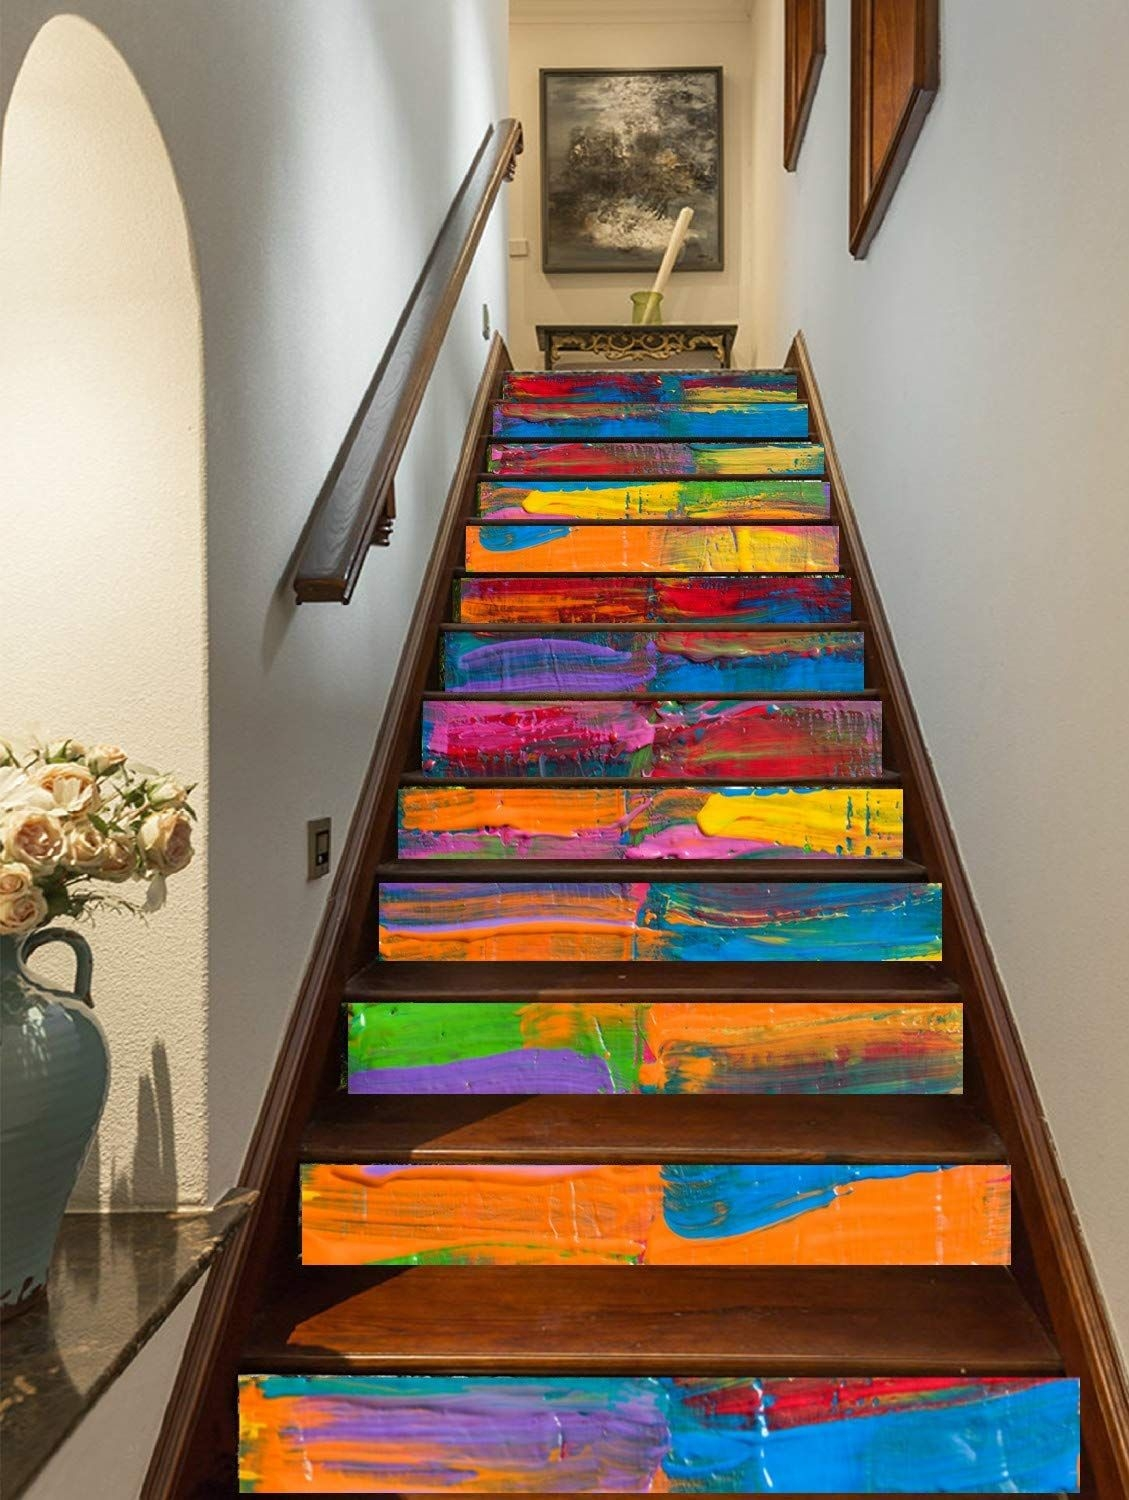 15 Of The Best Staircase Stickers And Tile Decals On Amazon   Stick On Carpet For Stairs   Rugs   Flooring   Carpet Tiles   Stair Runner   Anti Slip